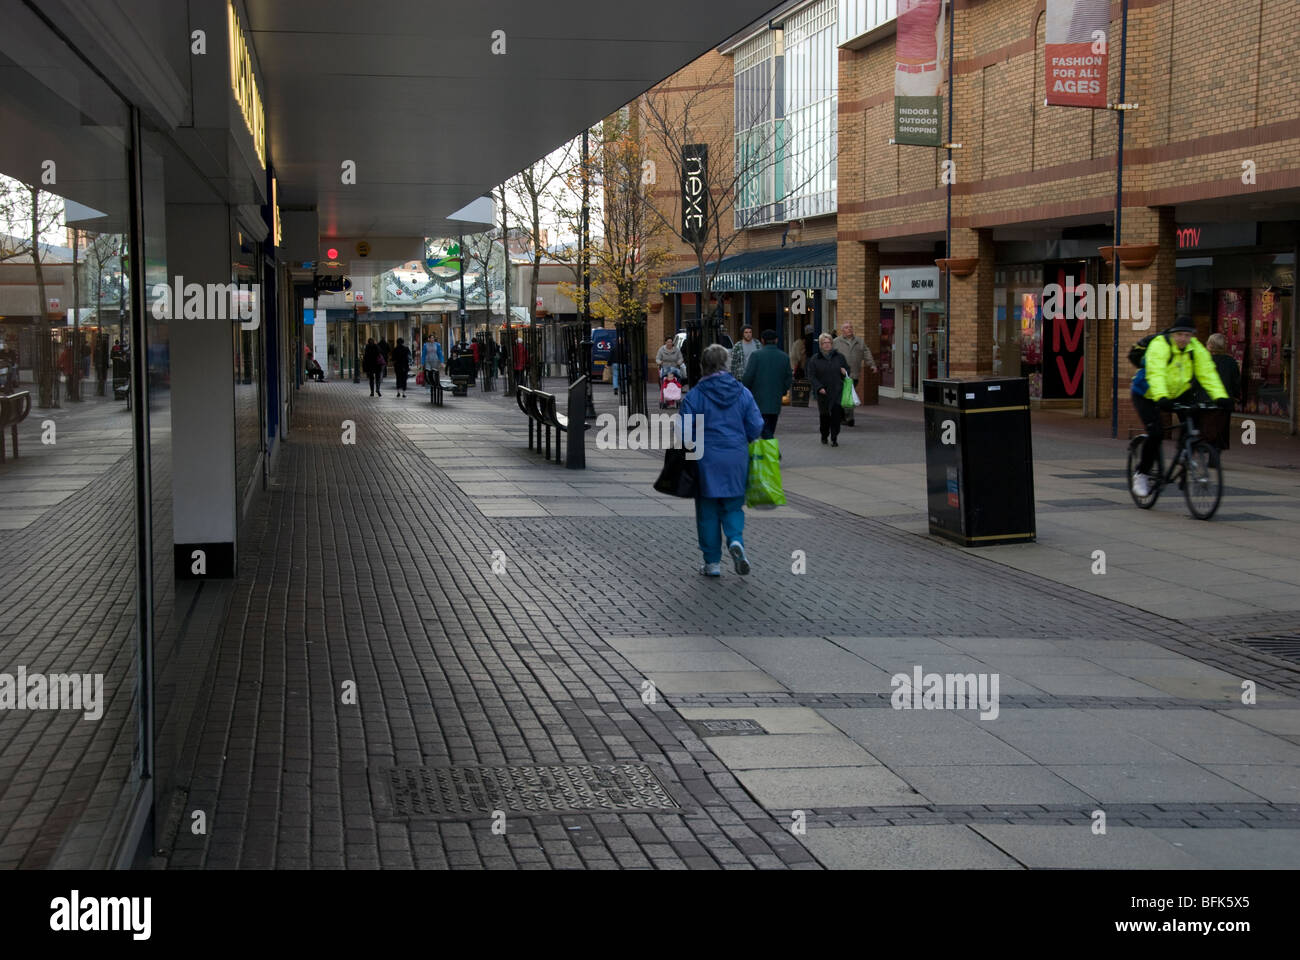 Grange Road Birkenhead in Merseyside showing the Pyramids Shopping Centre - Stock Image